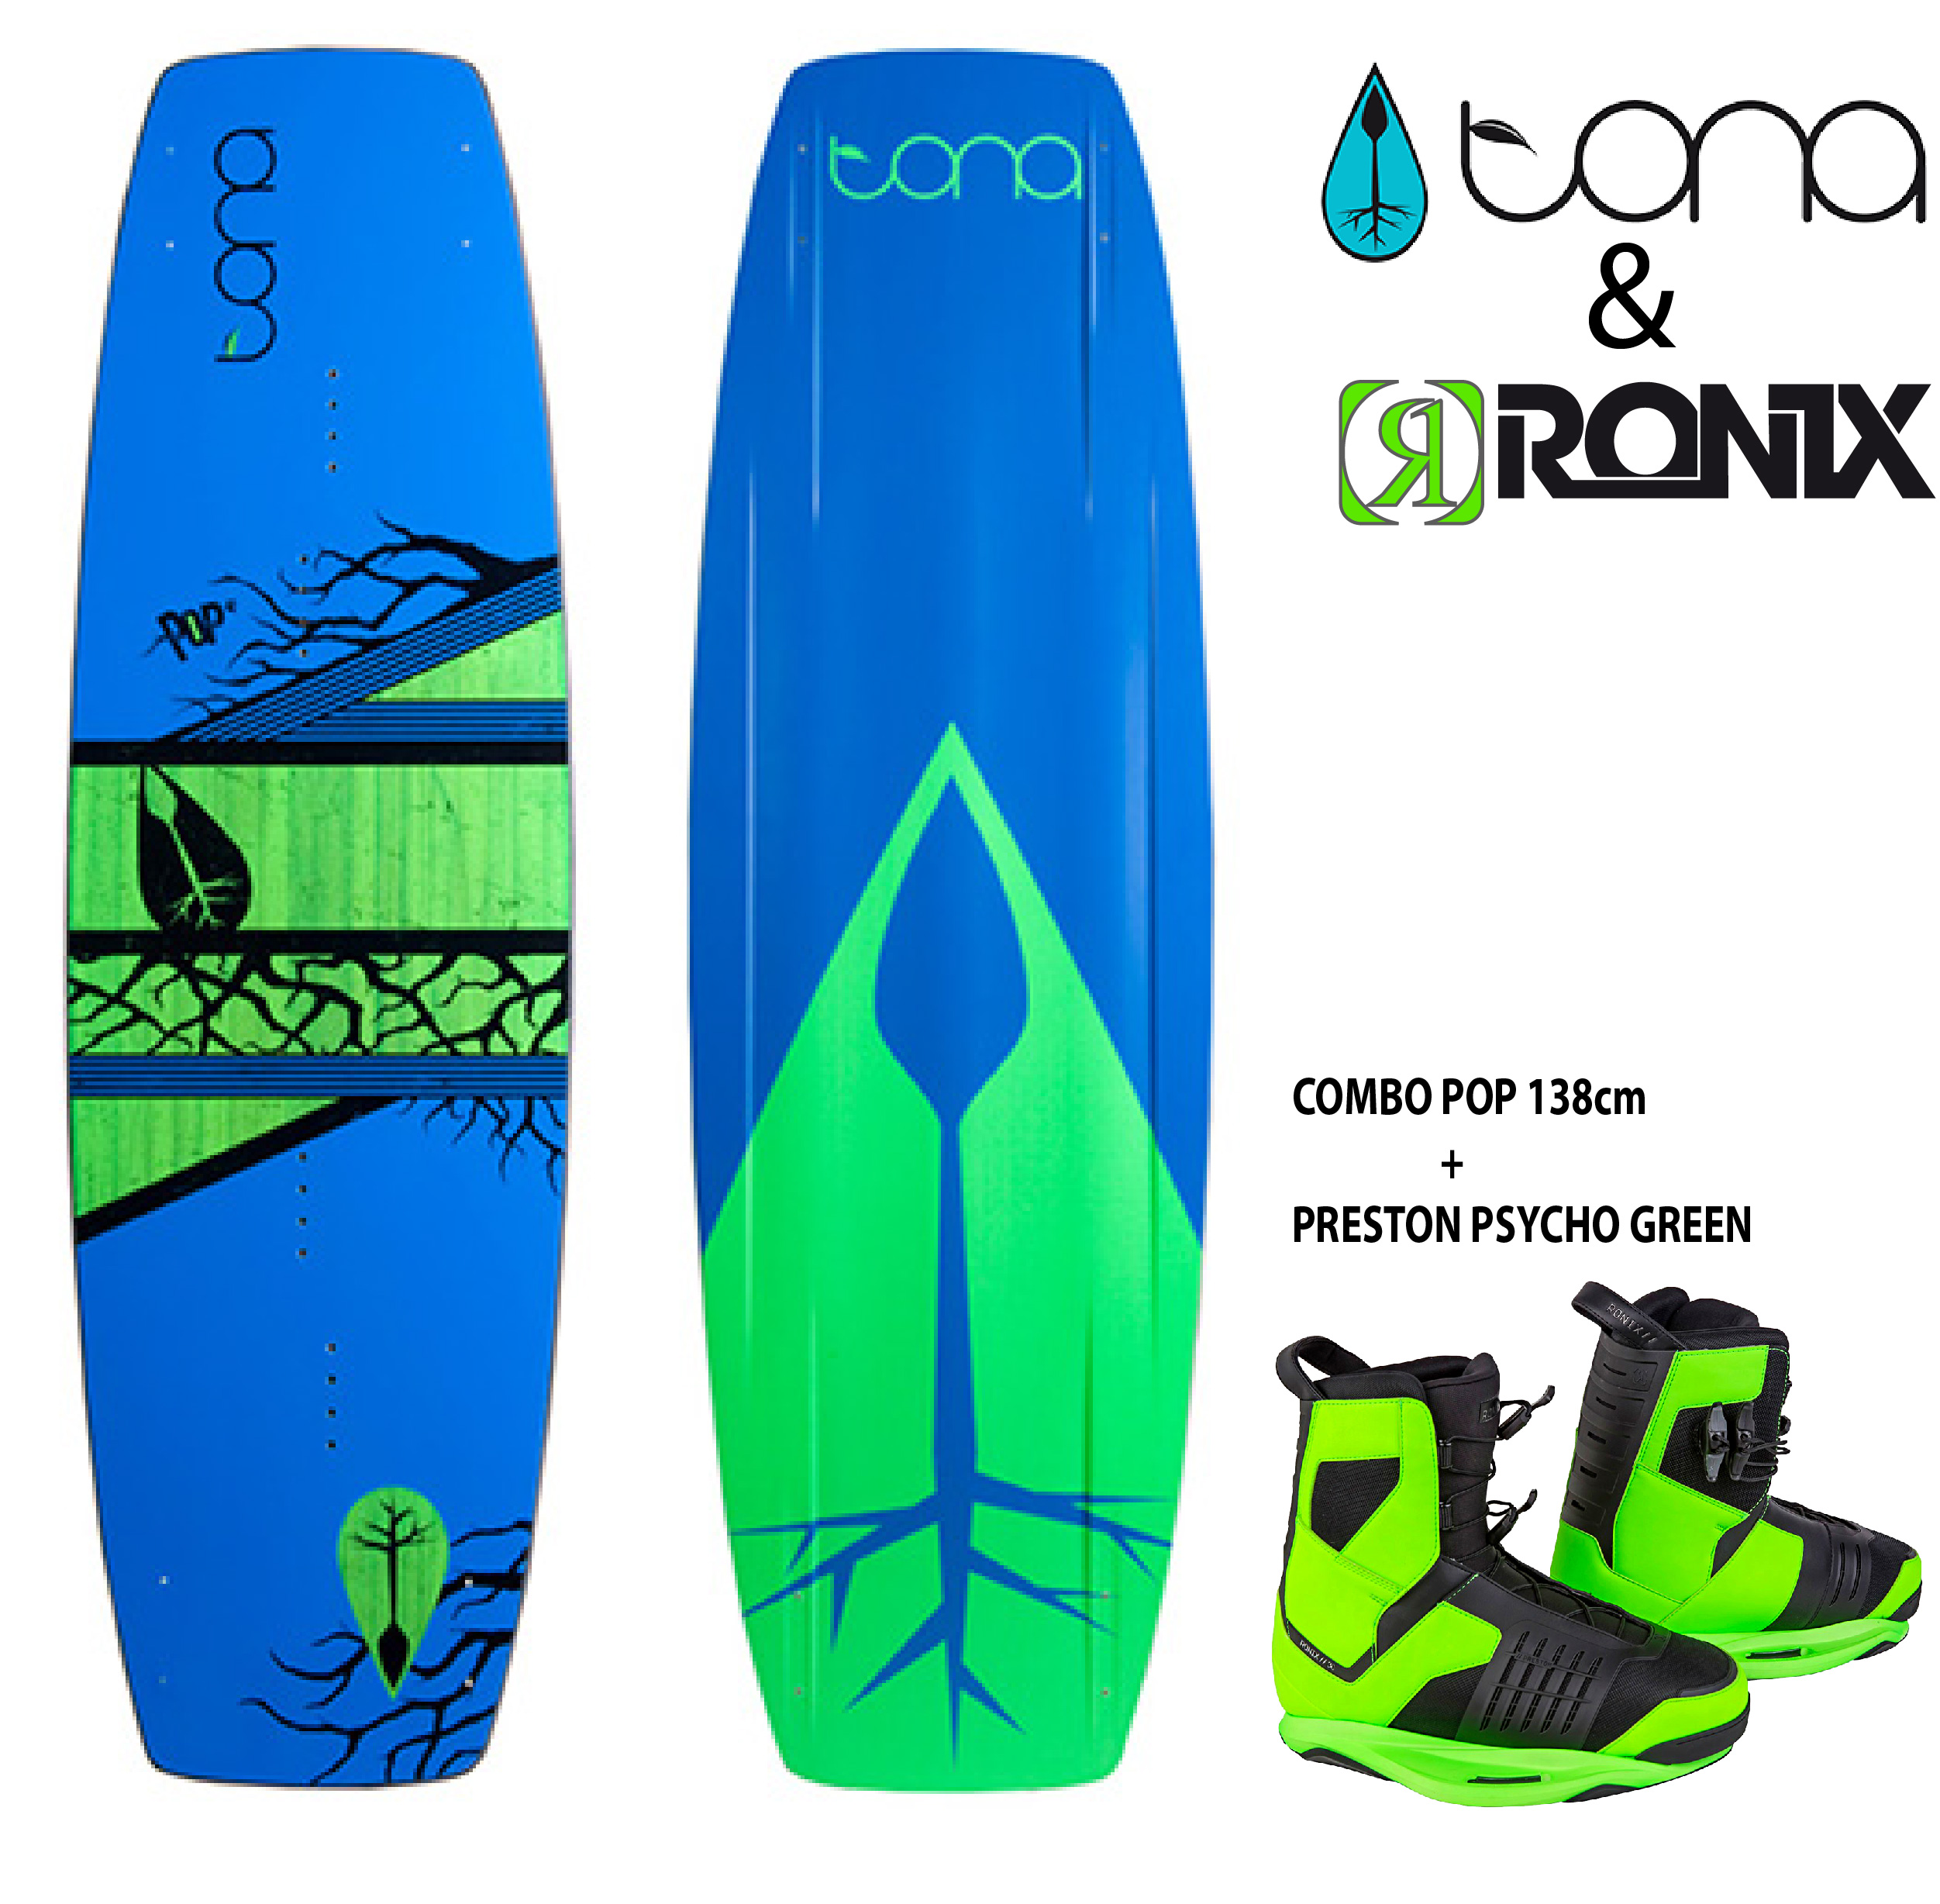 Combo Tona Pop 138cm c/Ronix Preston Psycho Green